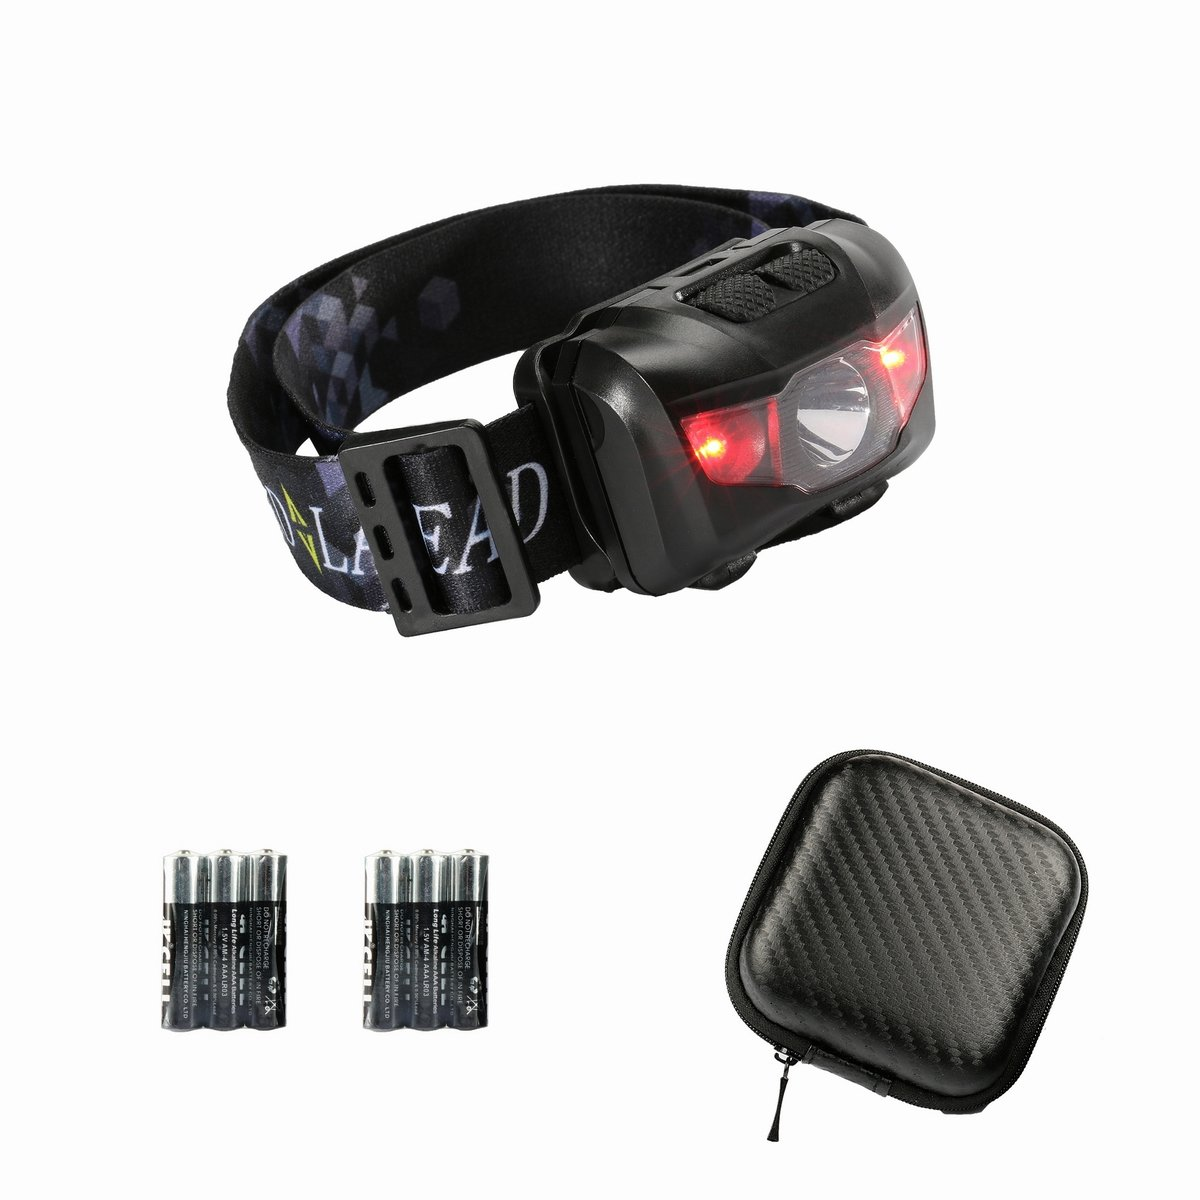 Lightweight Led Headlamp Head Torch Flashlight With 6 Exciting Scout Crafts 1 Or 2 Aaa Batteries Red Flash Lights Portable And Hard Case Adjustable Lighting Beam